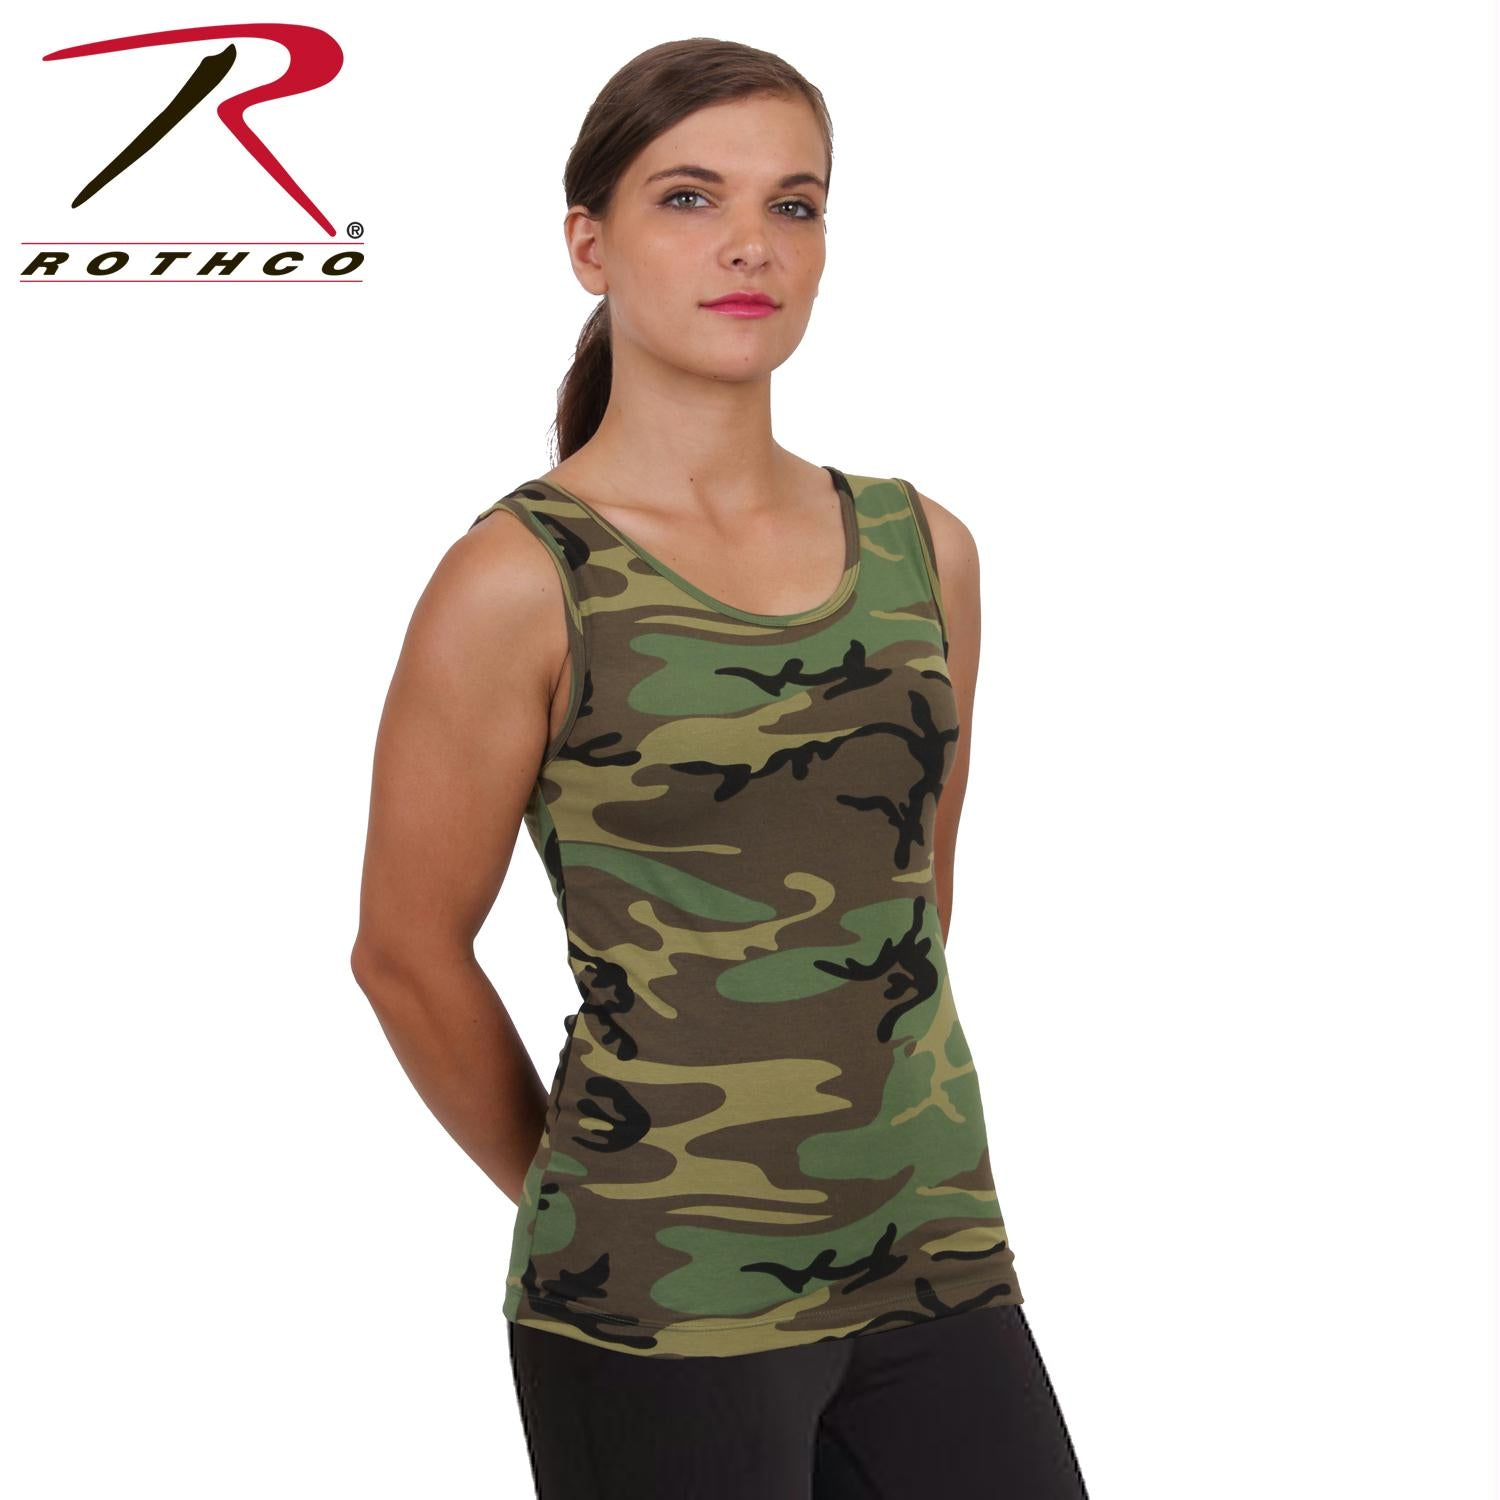 Rothco Womens Camo Stretch Tank Top - Woodland Camo / XS